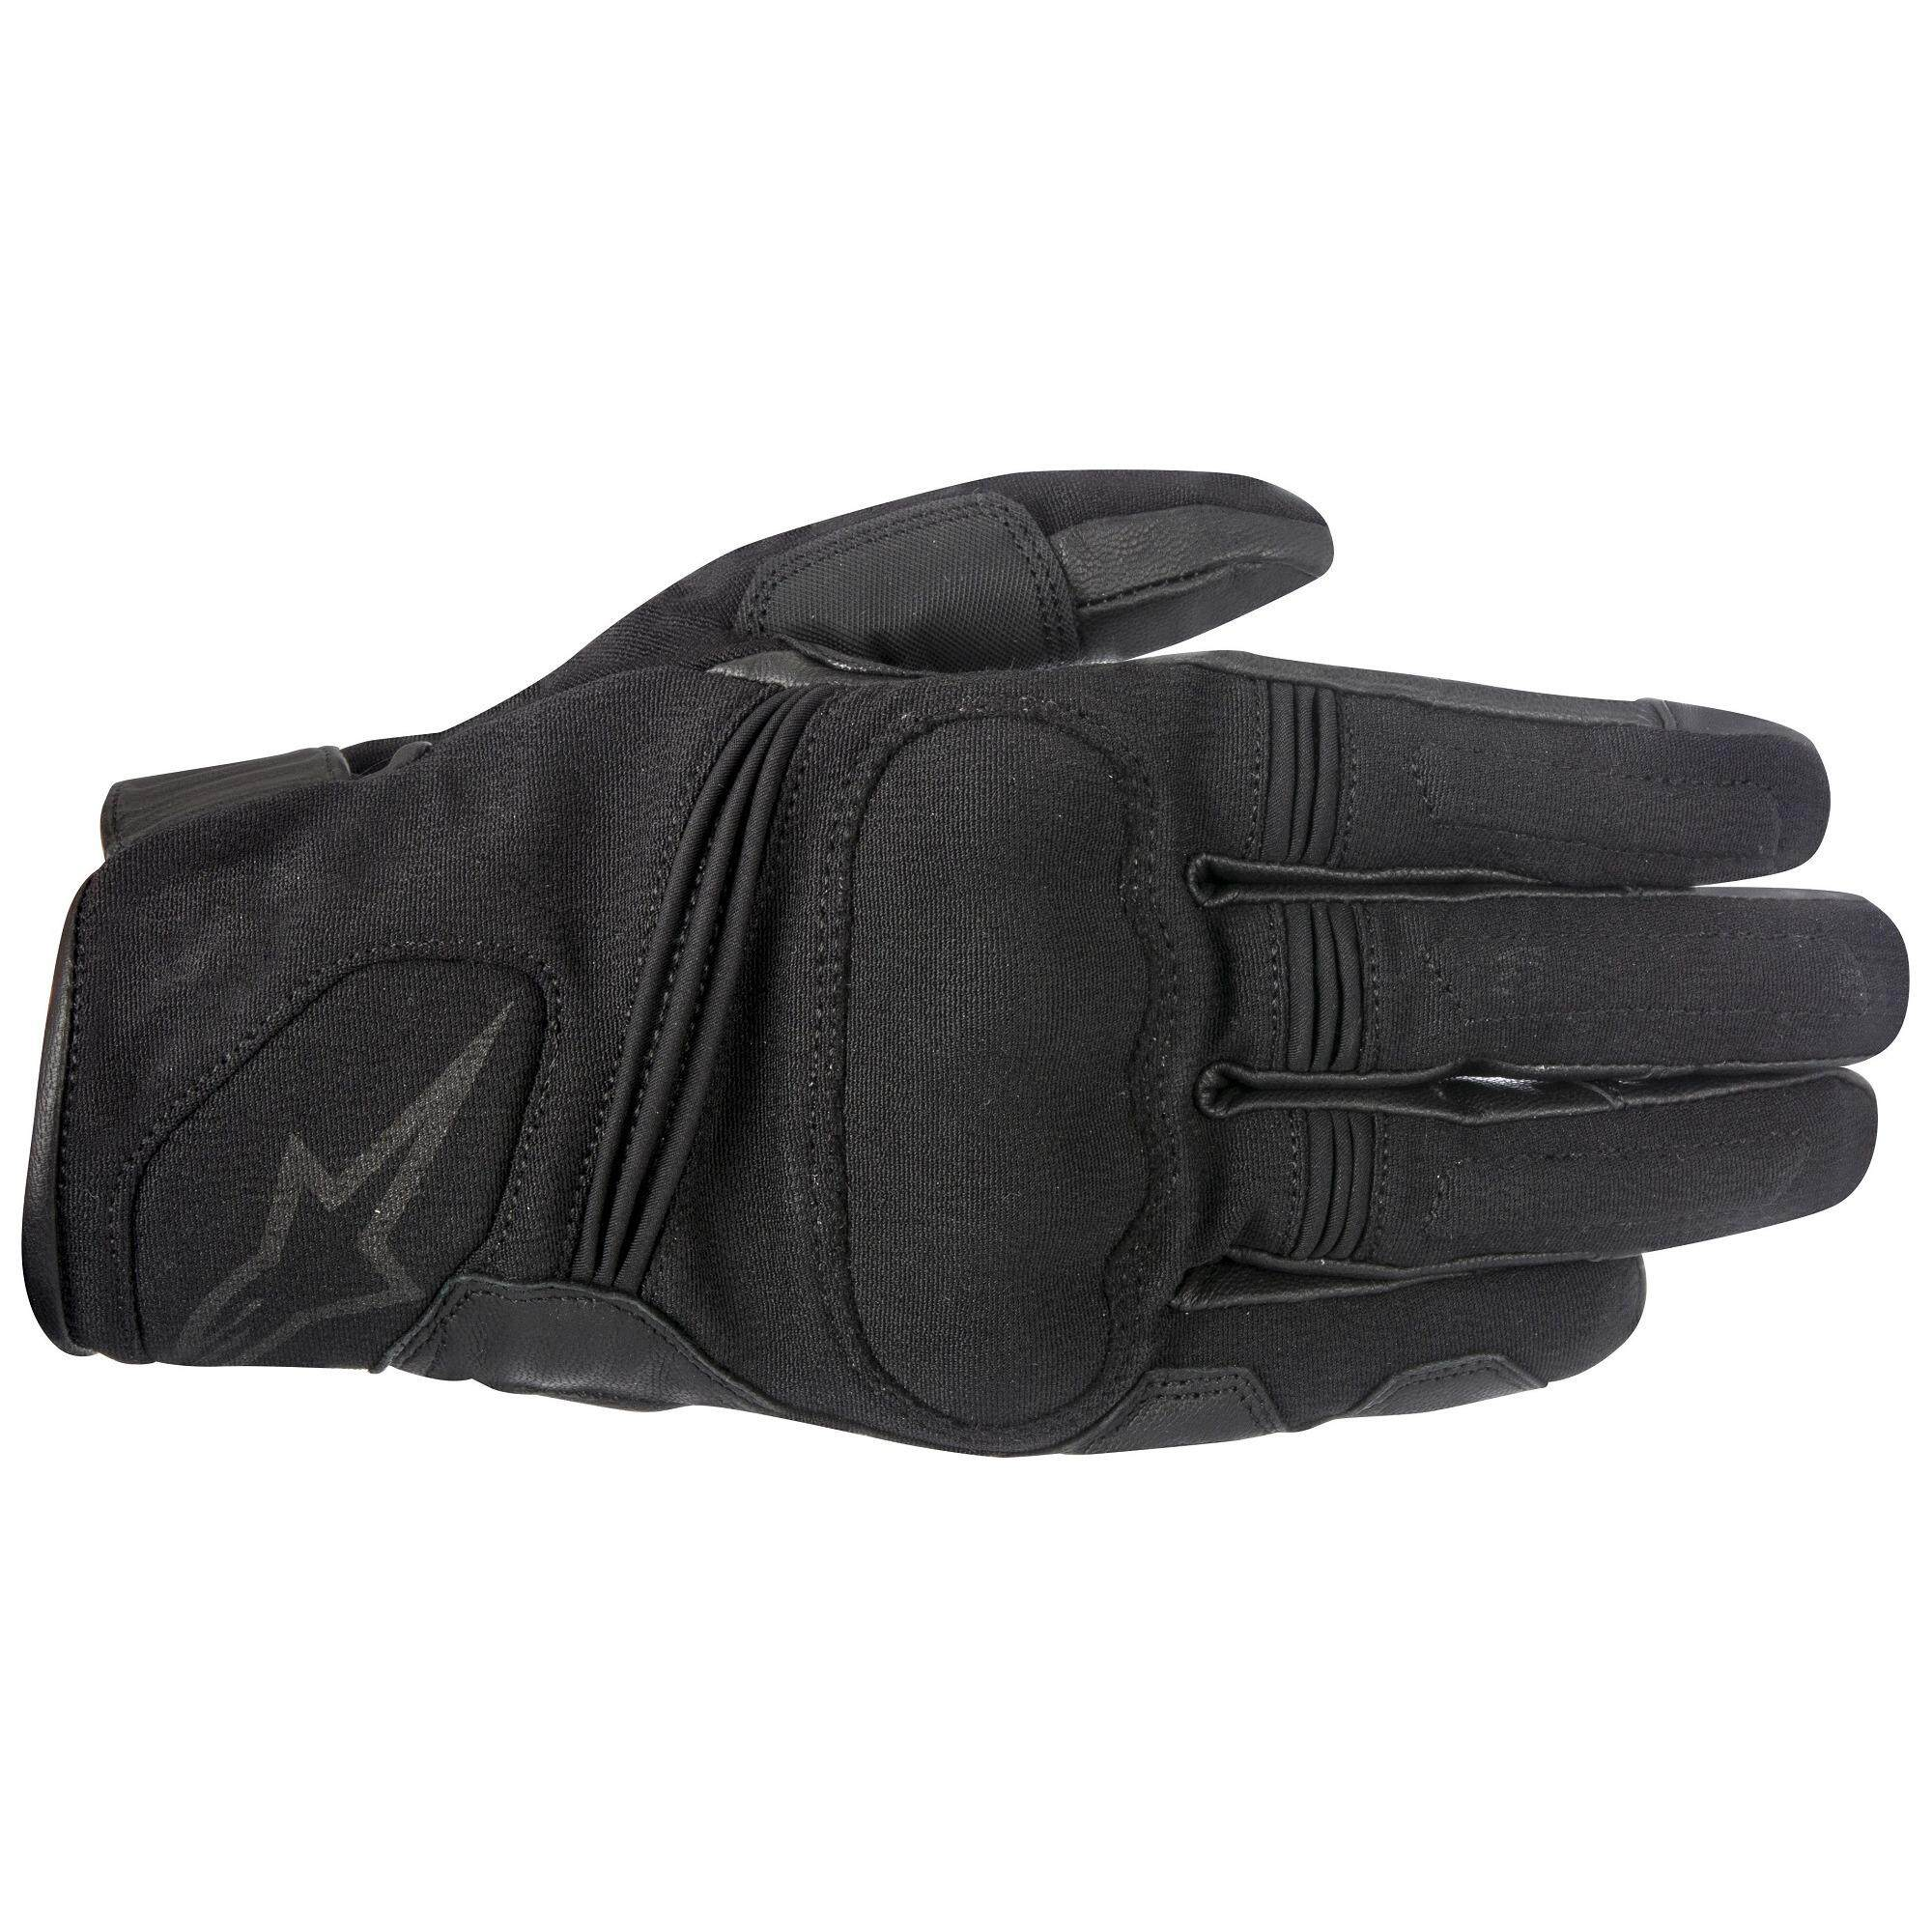 ALPINESTARS WARDEN GLOVE (BLACK) - [ORIGINAL]